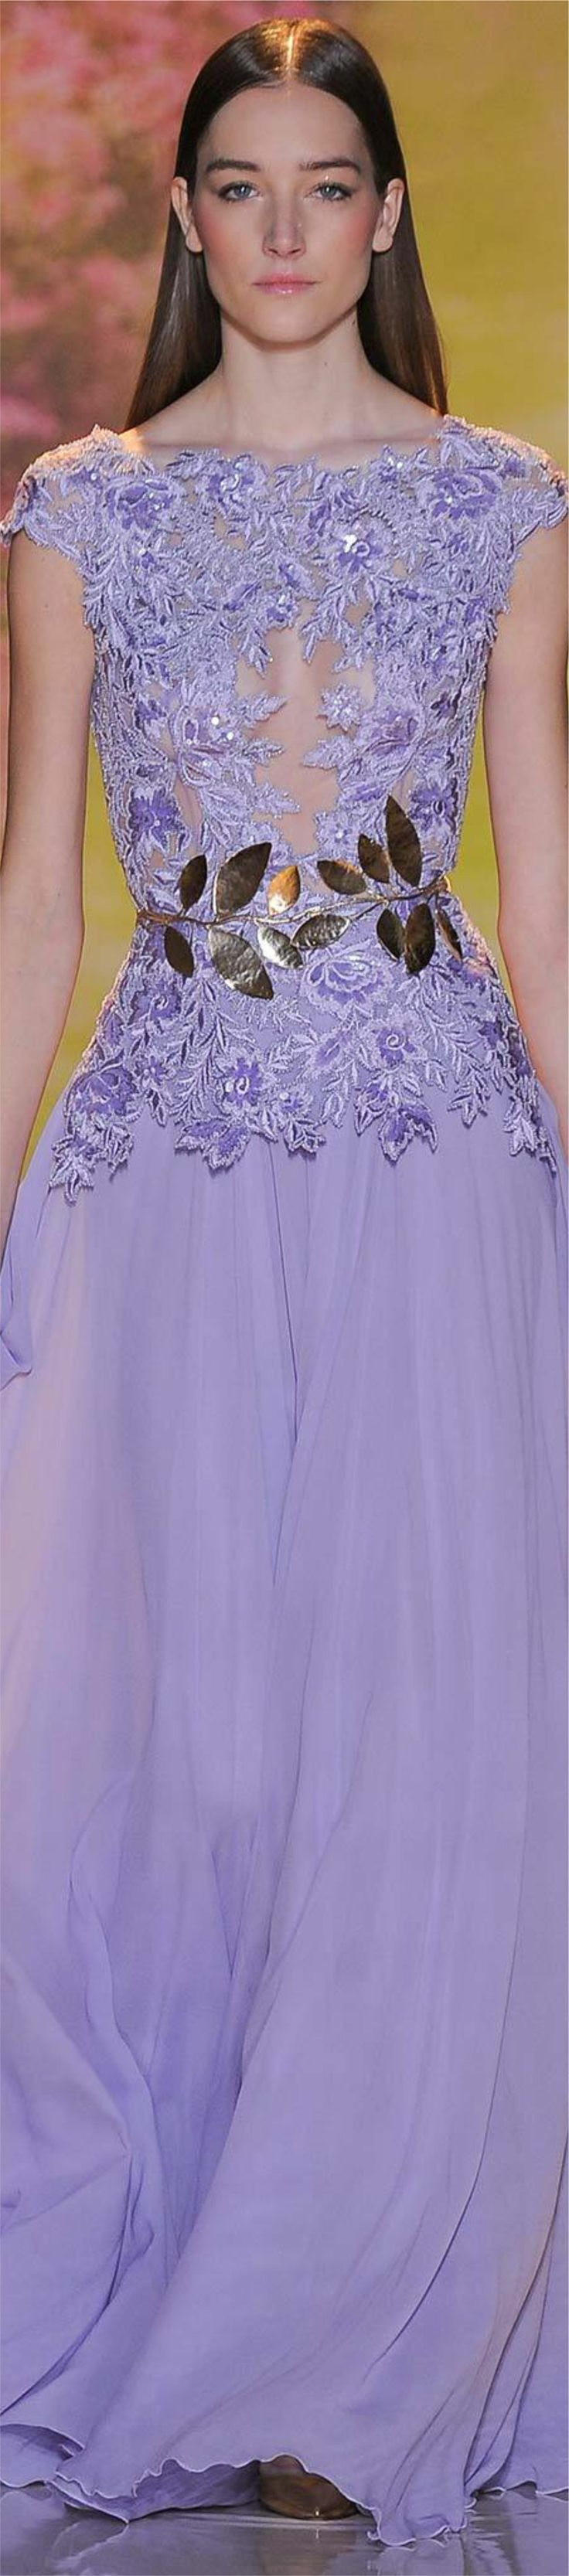 60 best Zuhair Murad Haute Couture Spring/Summer 2014 images on ...